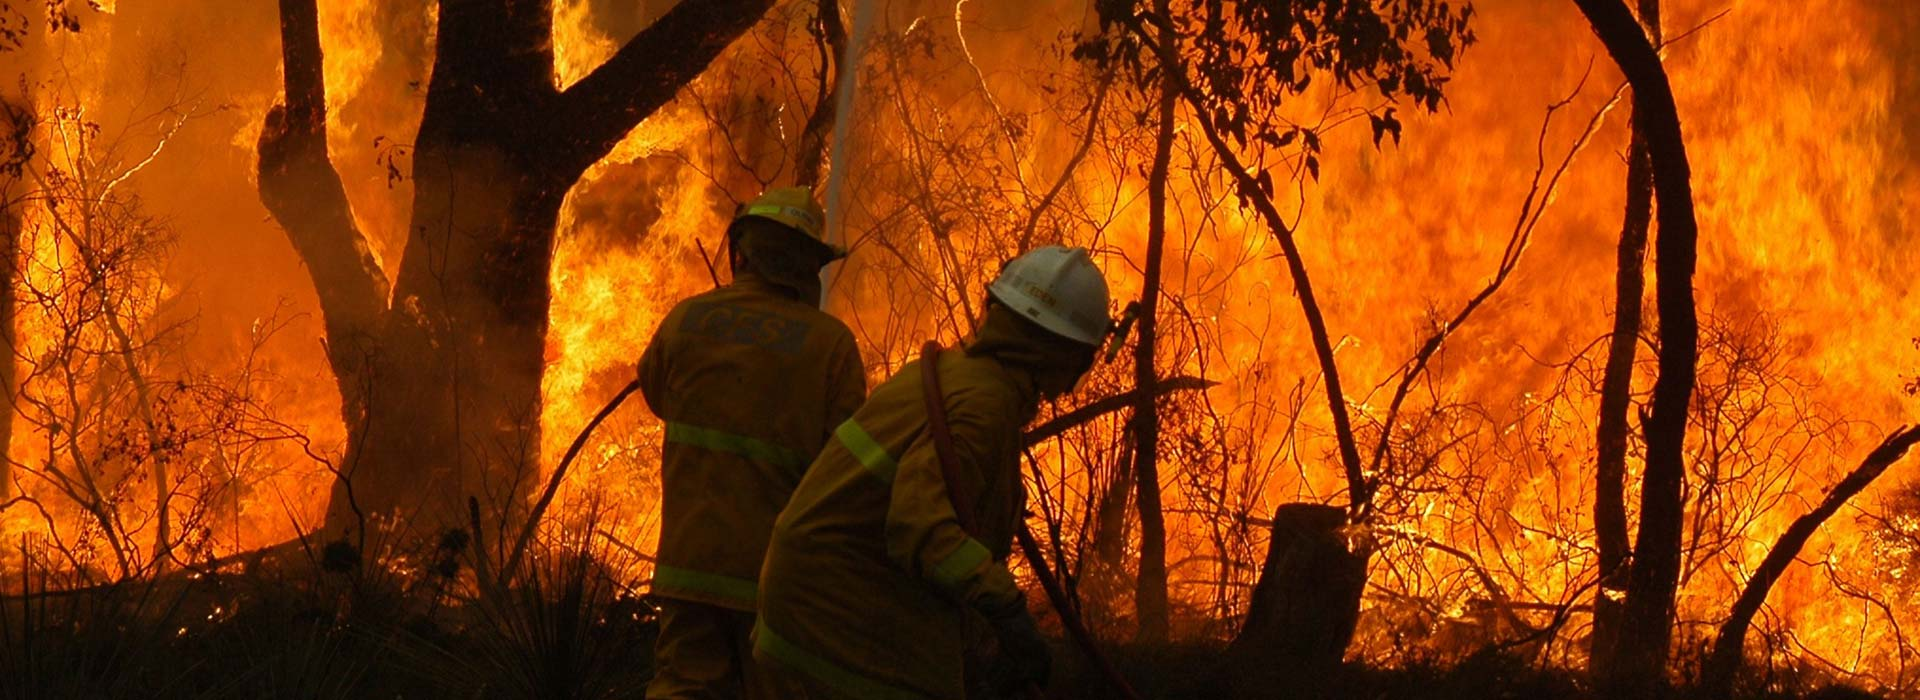 Bushfire Awareness